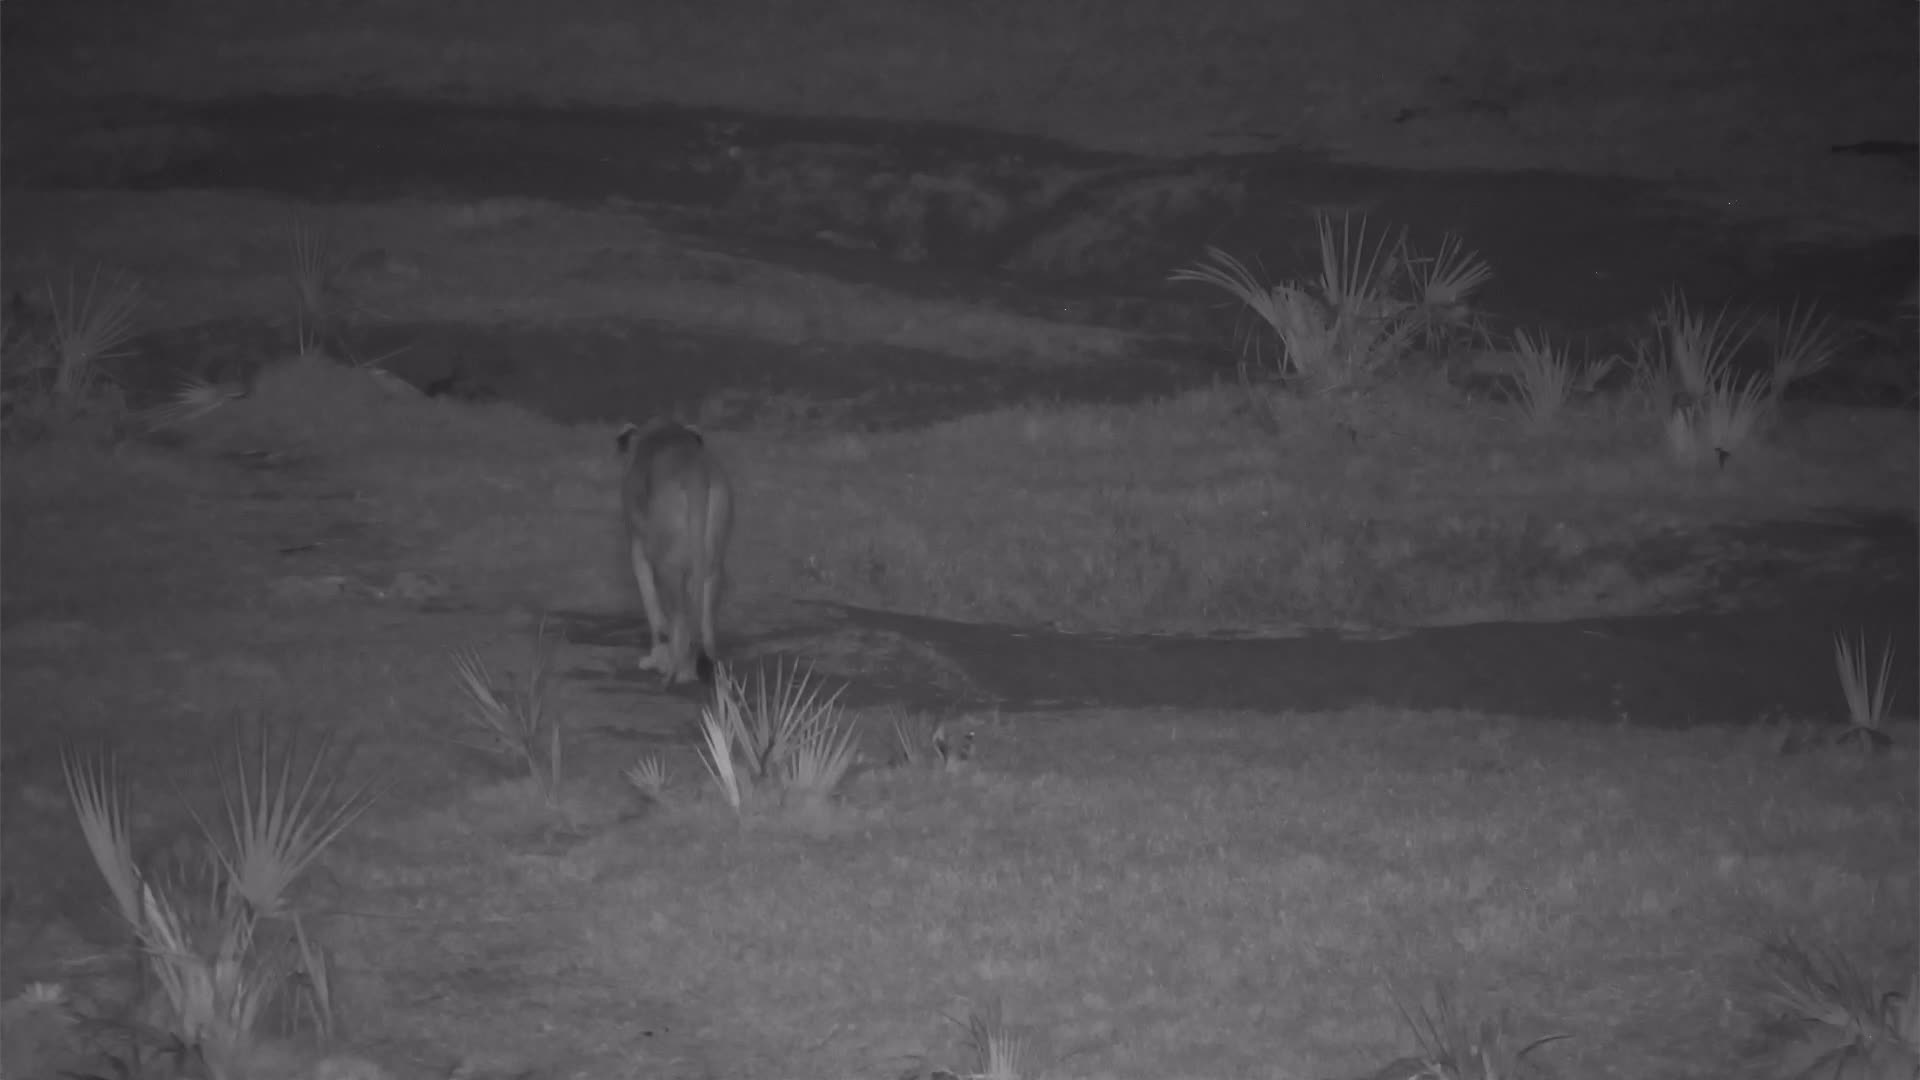 VIDEO: Lioness wanders past, scent marking as she goes